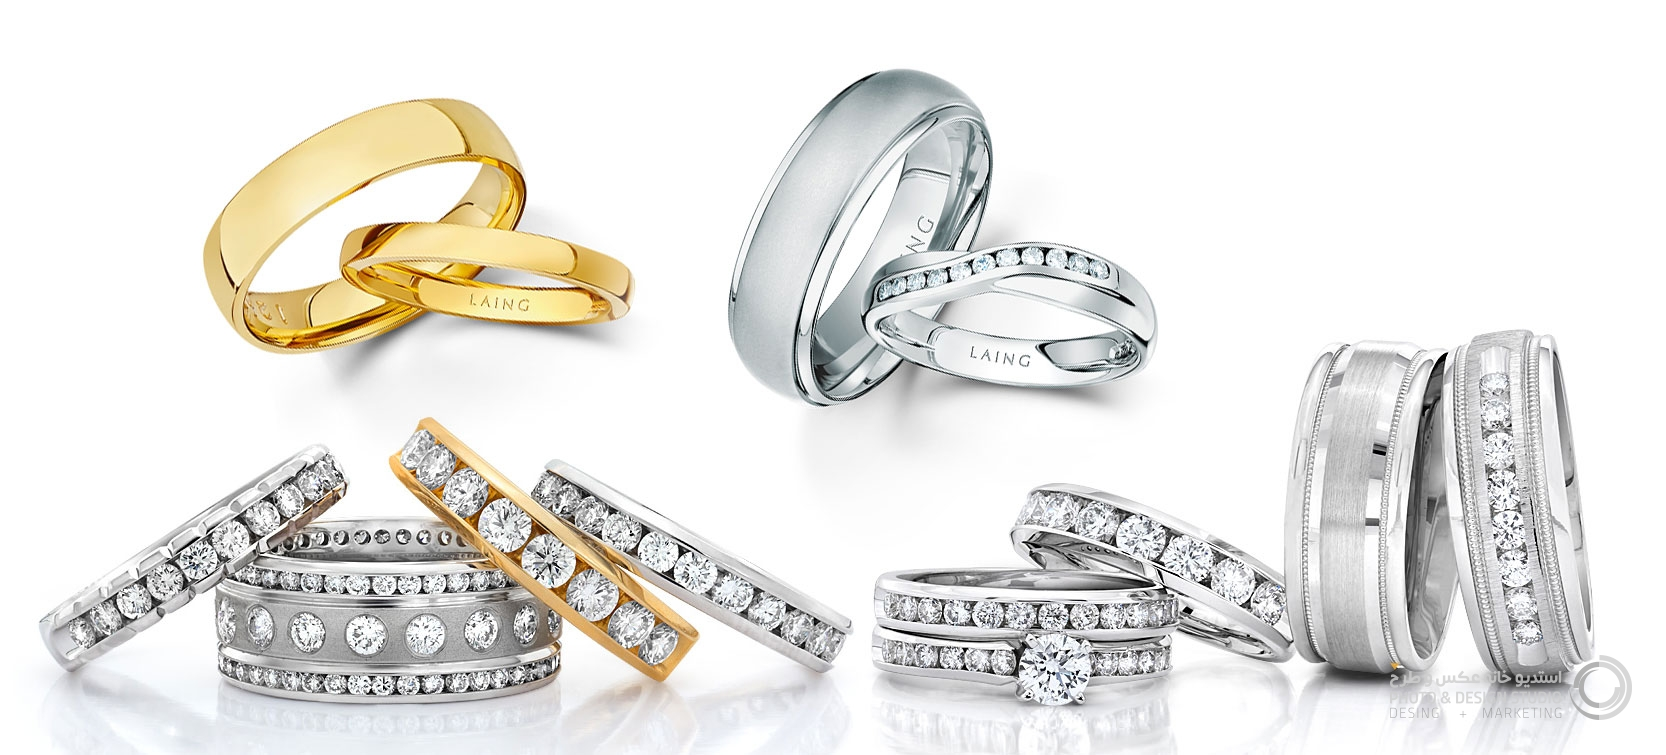 jewelry, photography, stone, diamond, gold, necklaces, earrings, advertising, branding, marketing